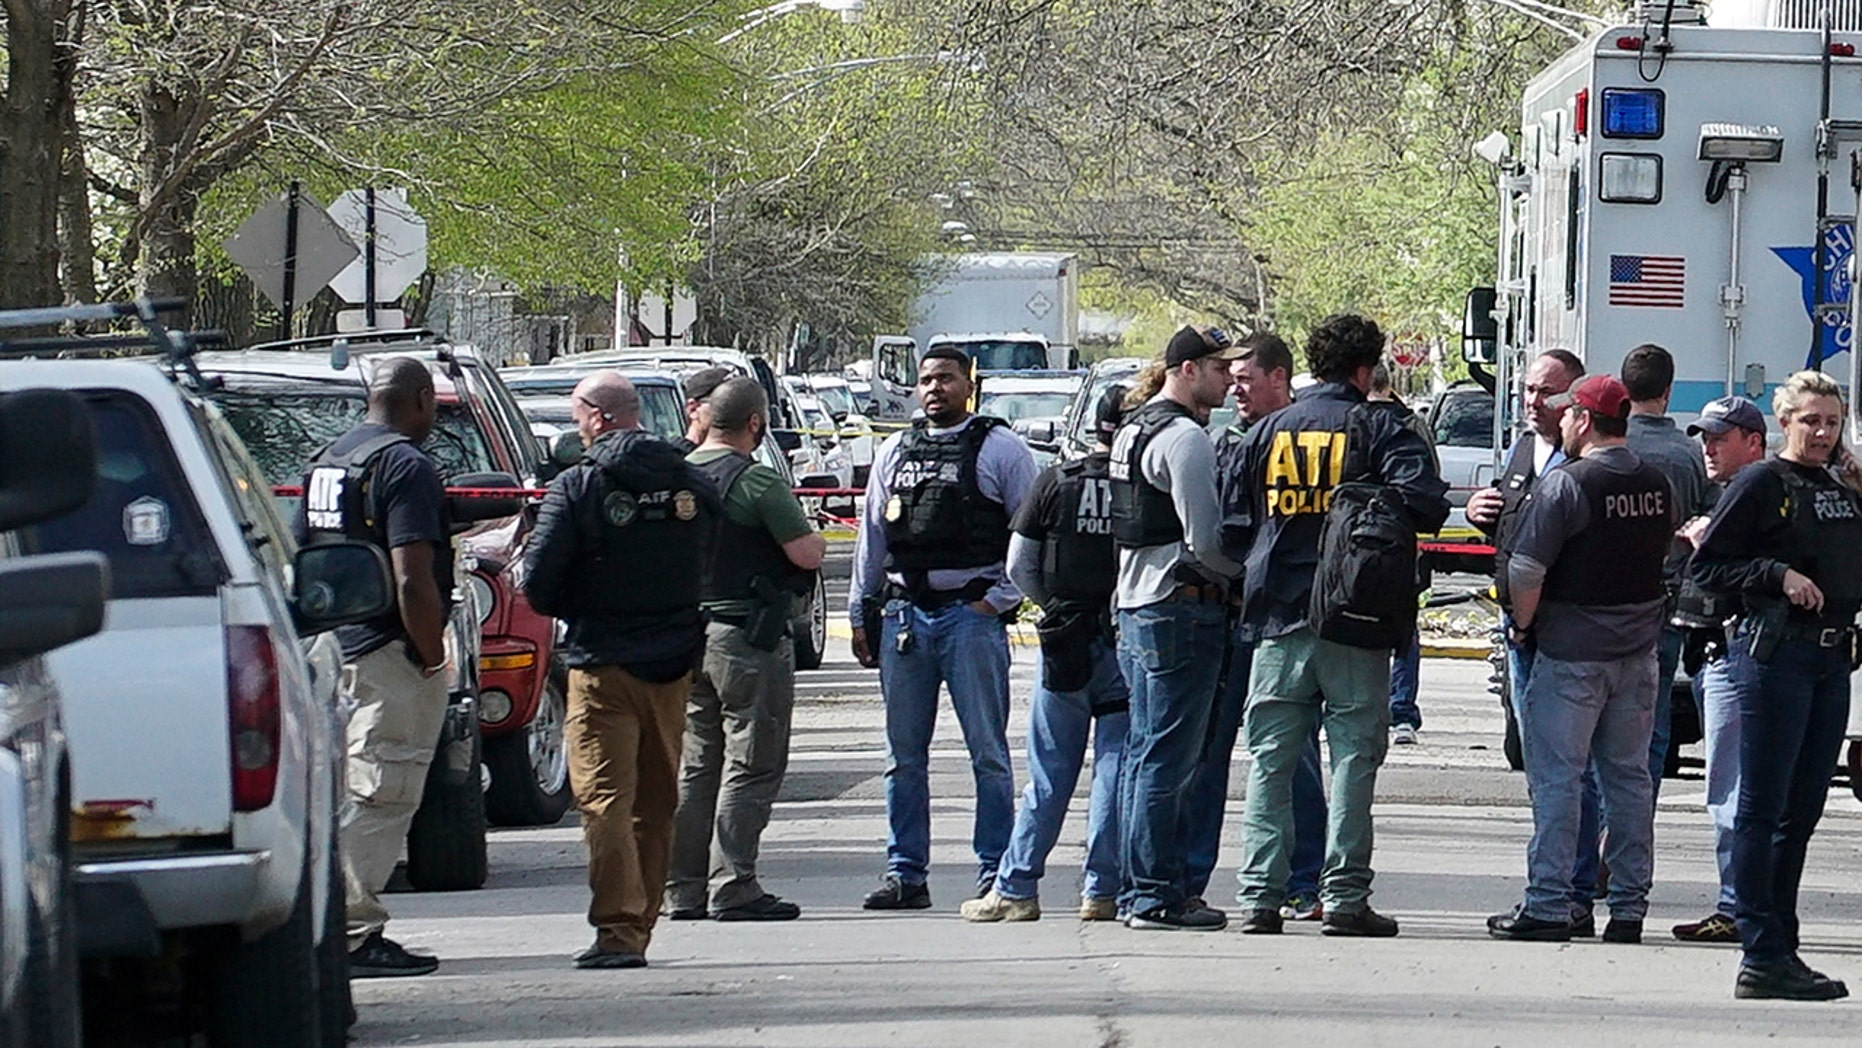 Police from various agencies investigate the scene where a Bureau of Alcohol, Tobacco, Firearms and Explosives agent was shot, Friday, May 4, 2018, in Chicago.